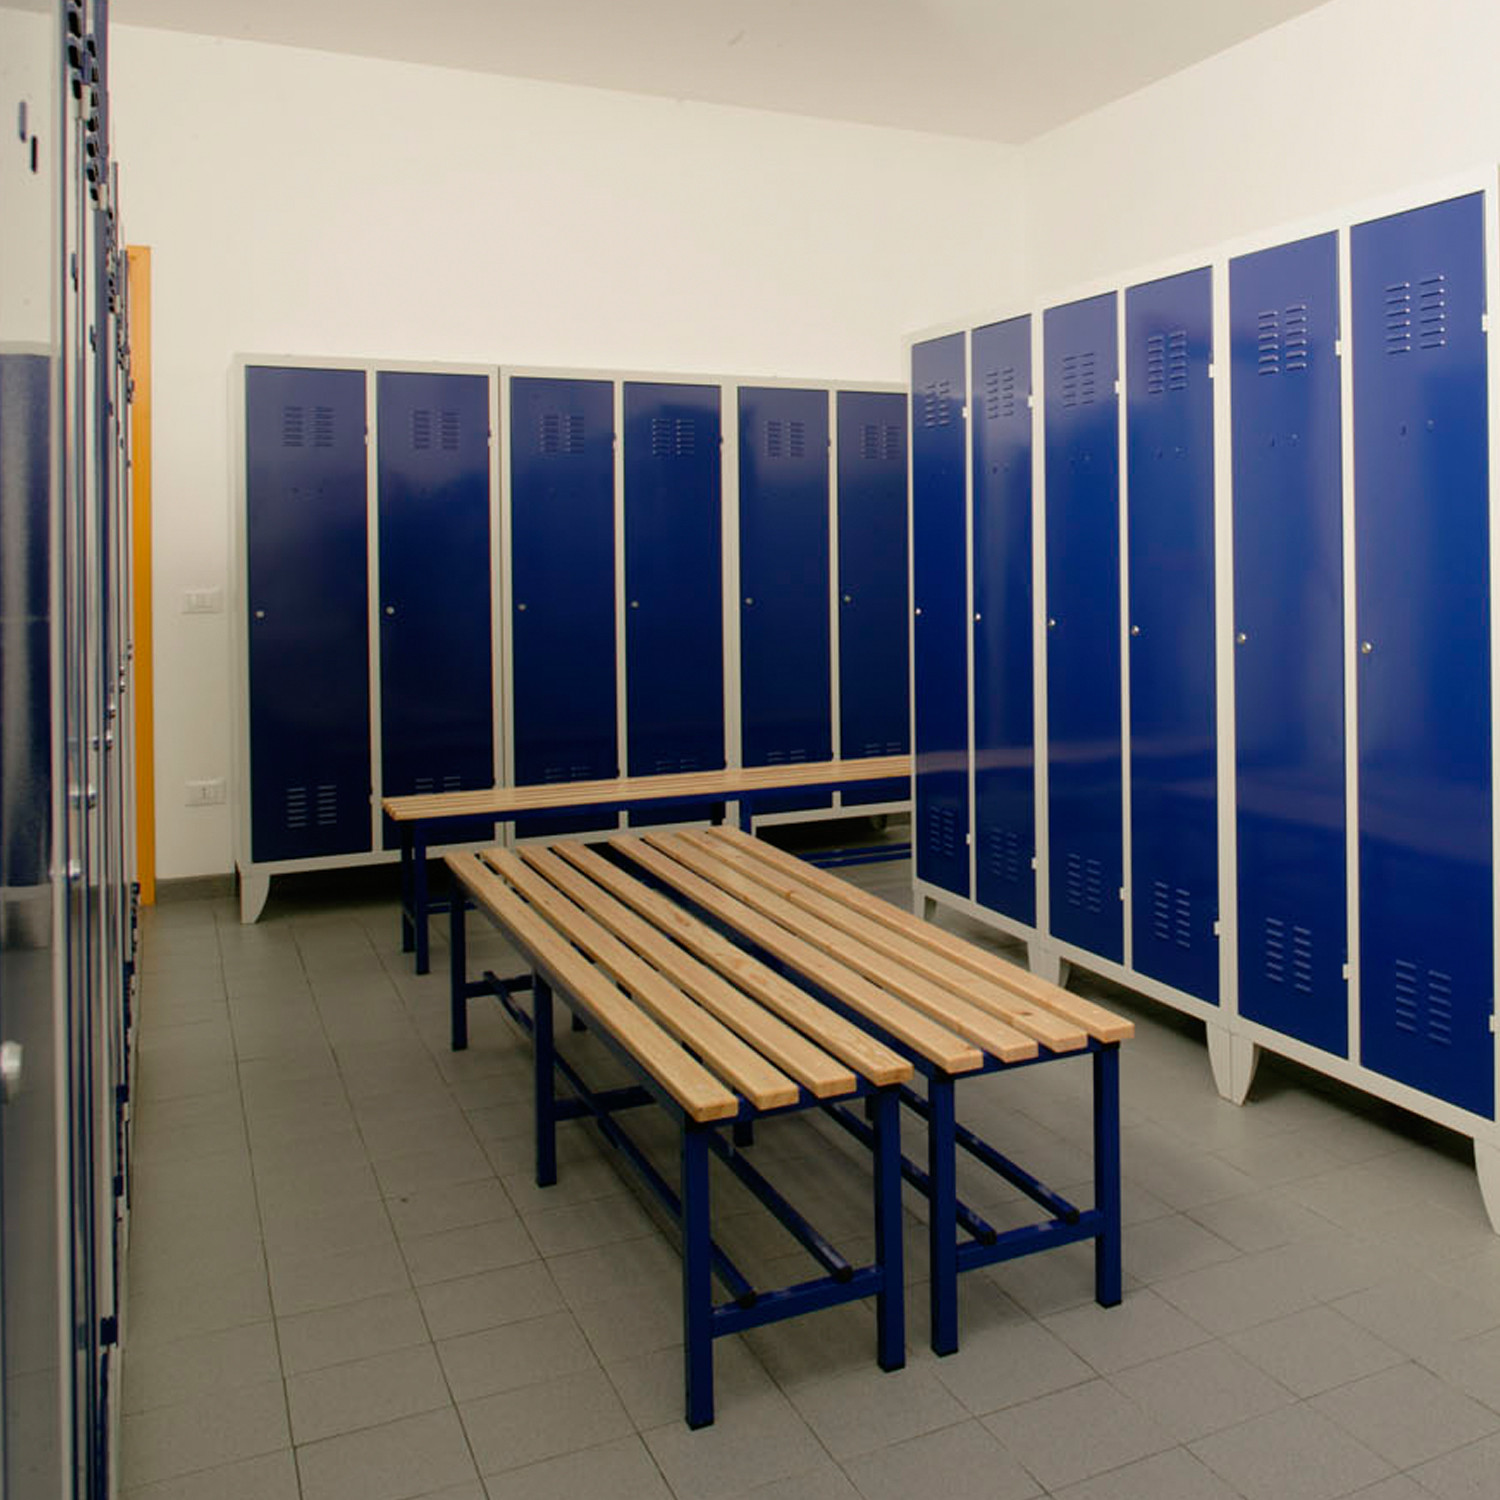 Lockerline Lockers are available in a wide range of colours